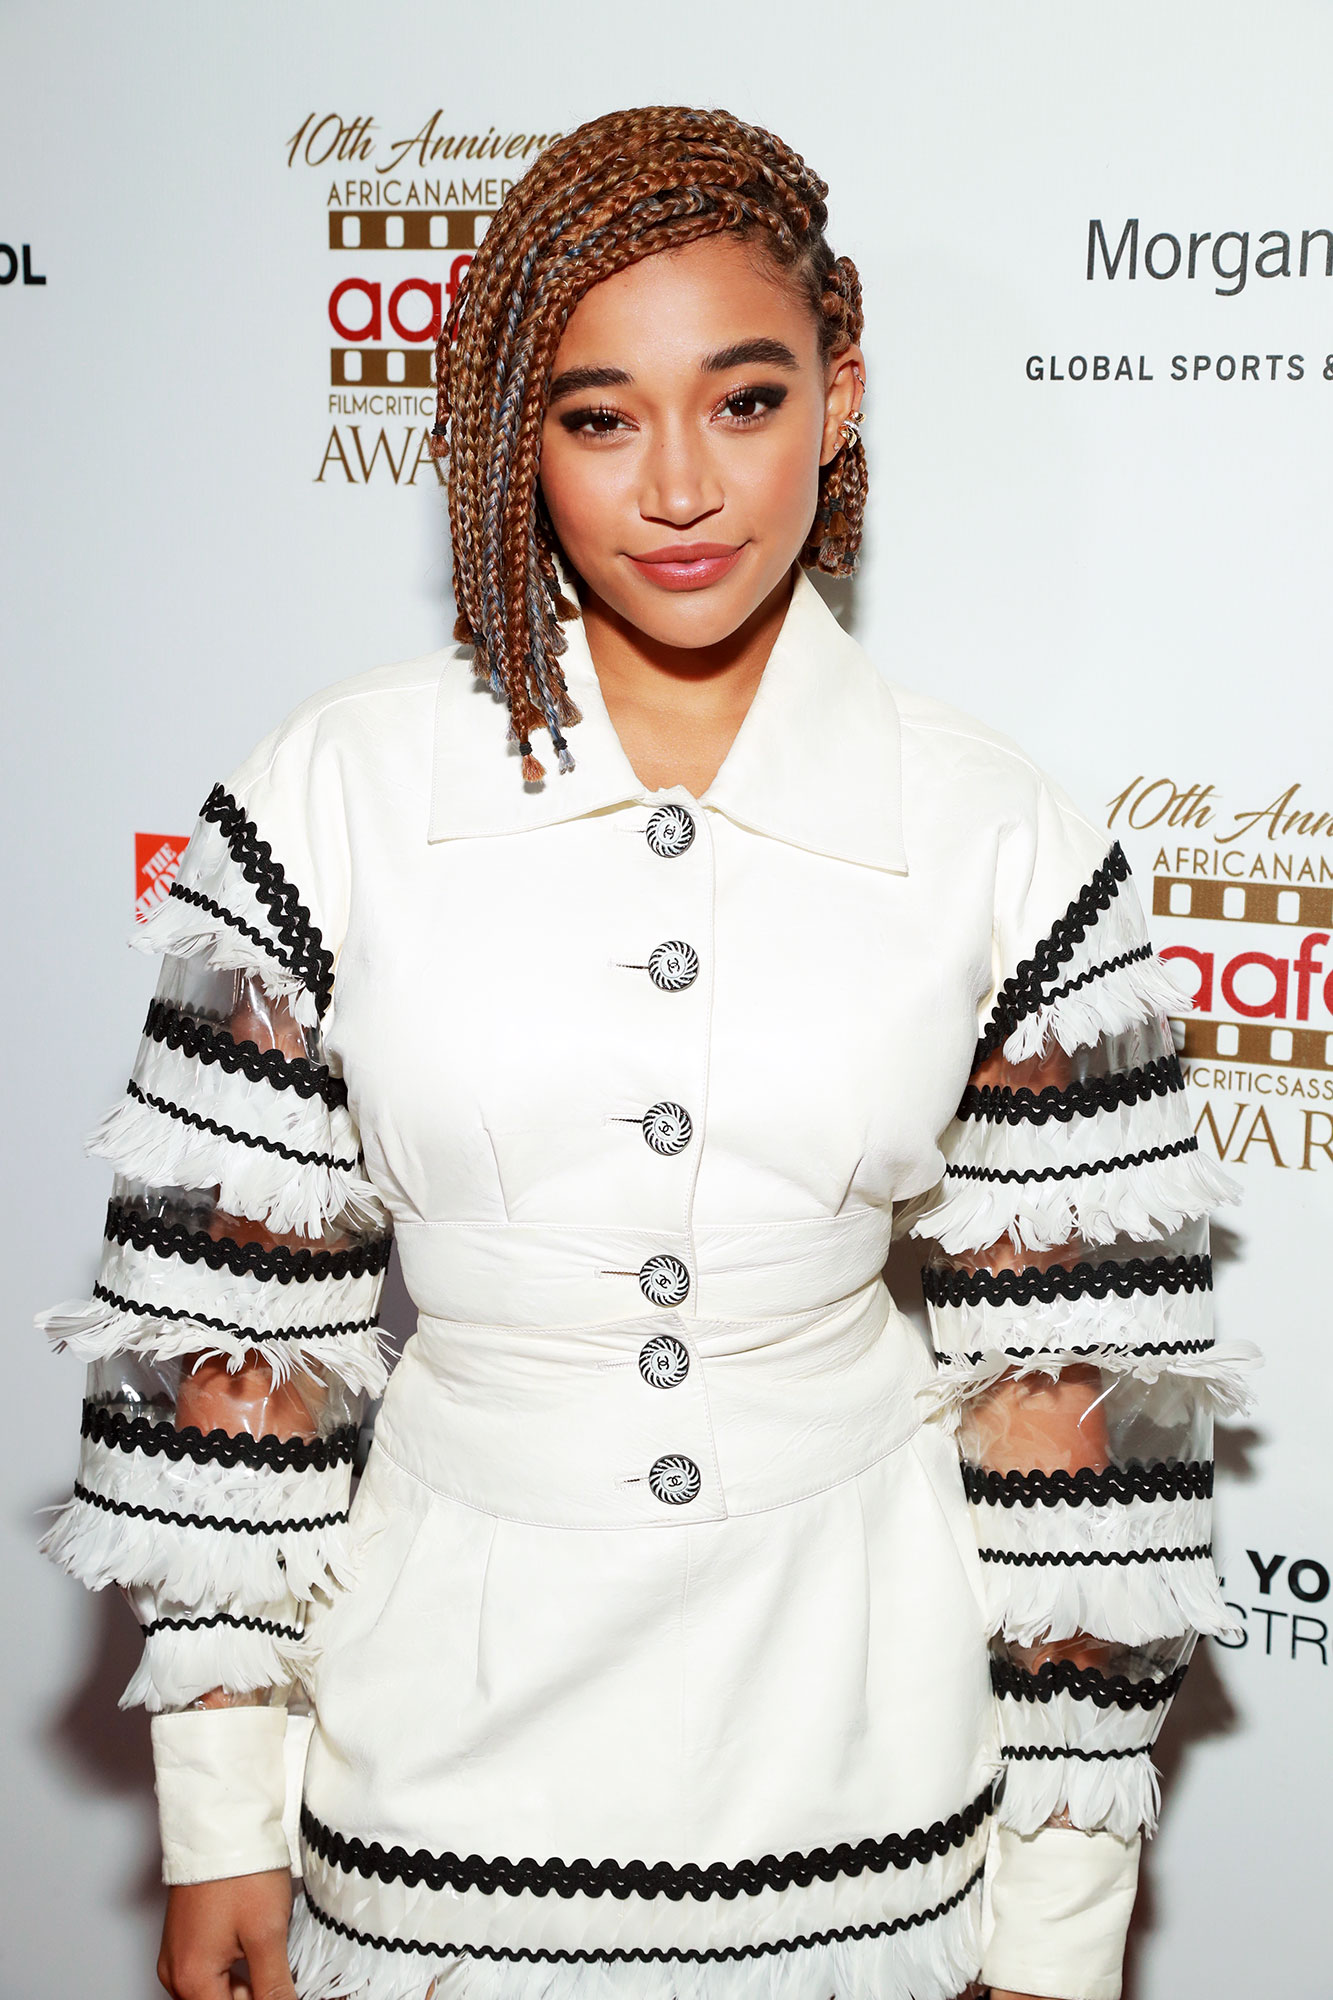 Amandla Stenberg Celebs Are Here With All the Coachella Beauty Inspo You Need - We're not sure what we love most about the actress' asymmetrical plaited 'do at the 2019 AAFCA Awards: the lob-length or the hints of the season's go-to icy purple hair color.